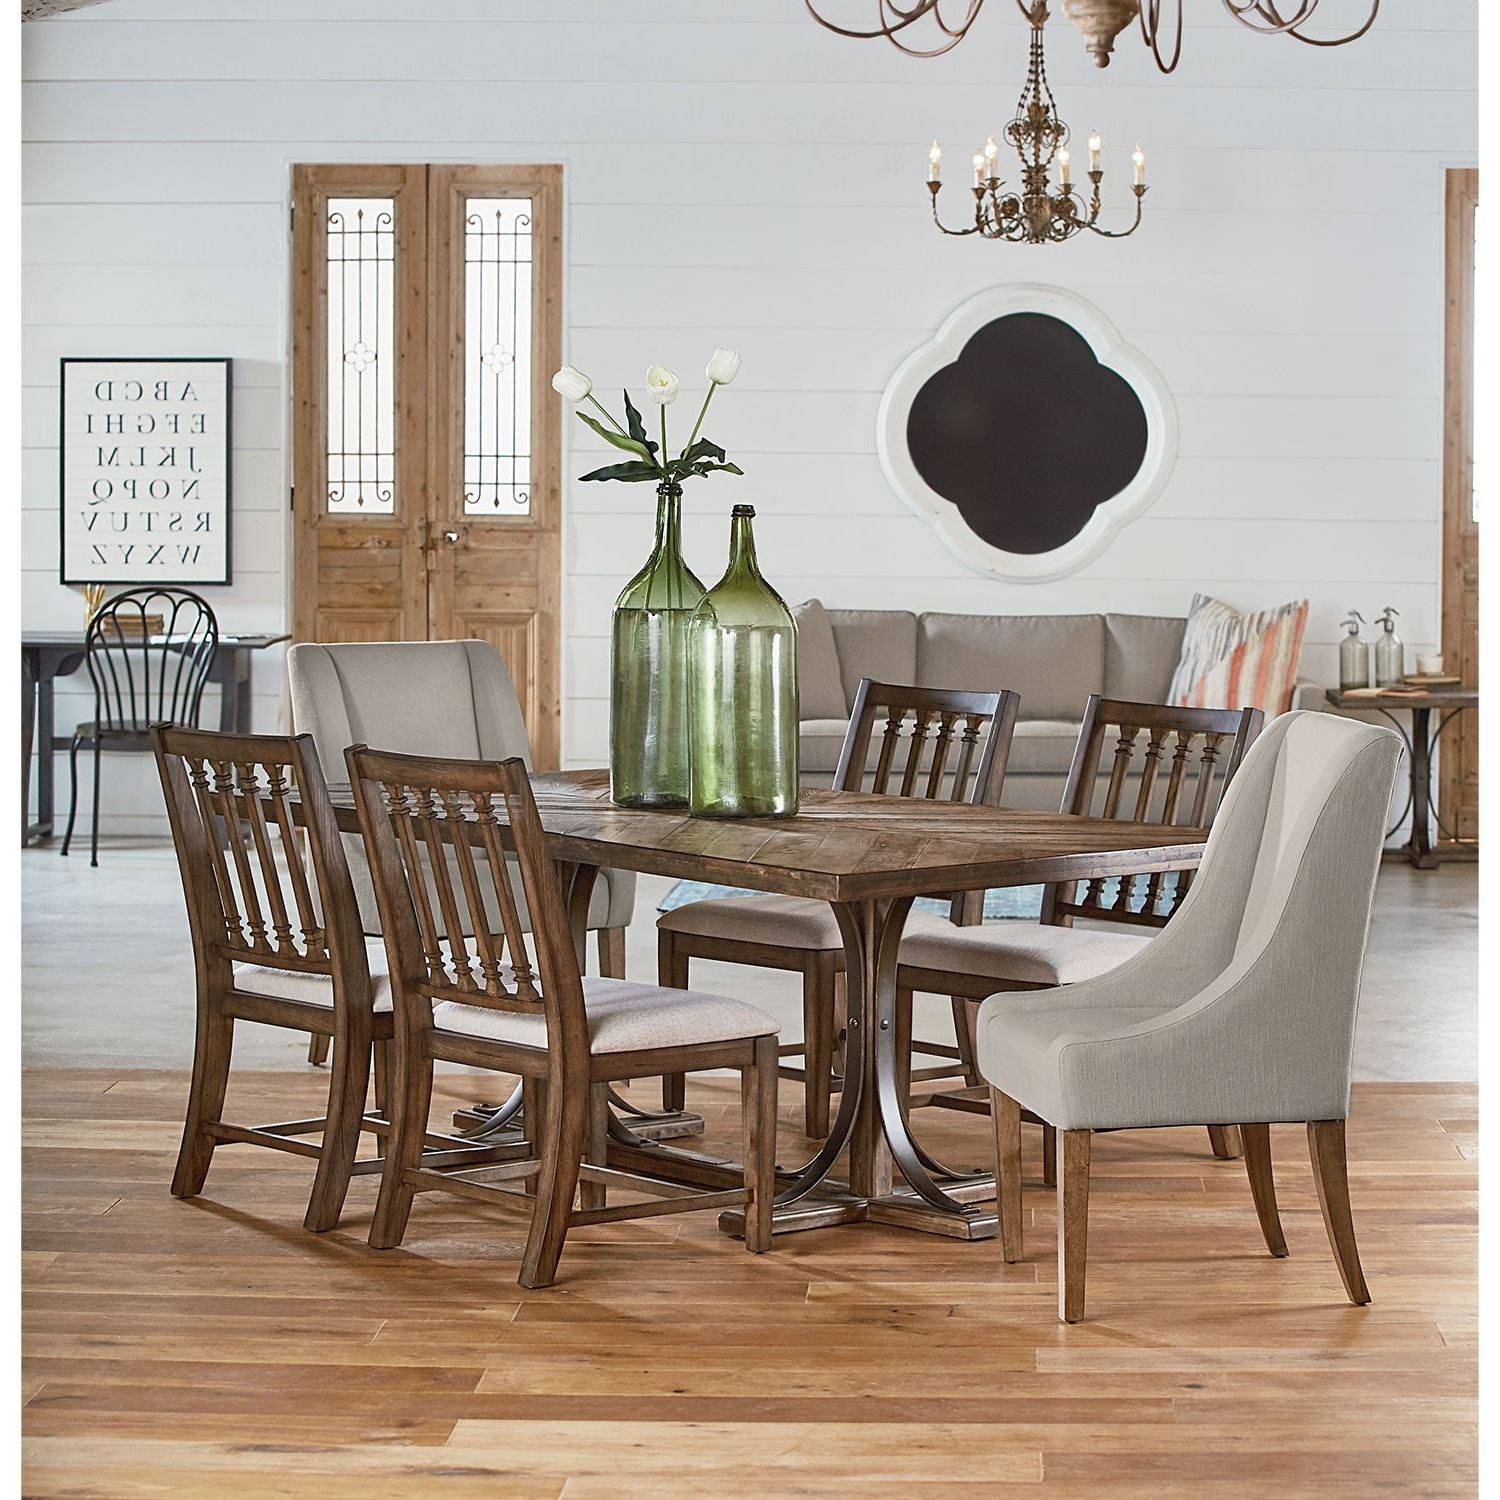 Magnolia Home Trestle Dining Table Awesome Small Solid Wood Dining Throughout Most Up To Date Magnolia Home Sawbuck Dining Tables (View 19 of 25)